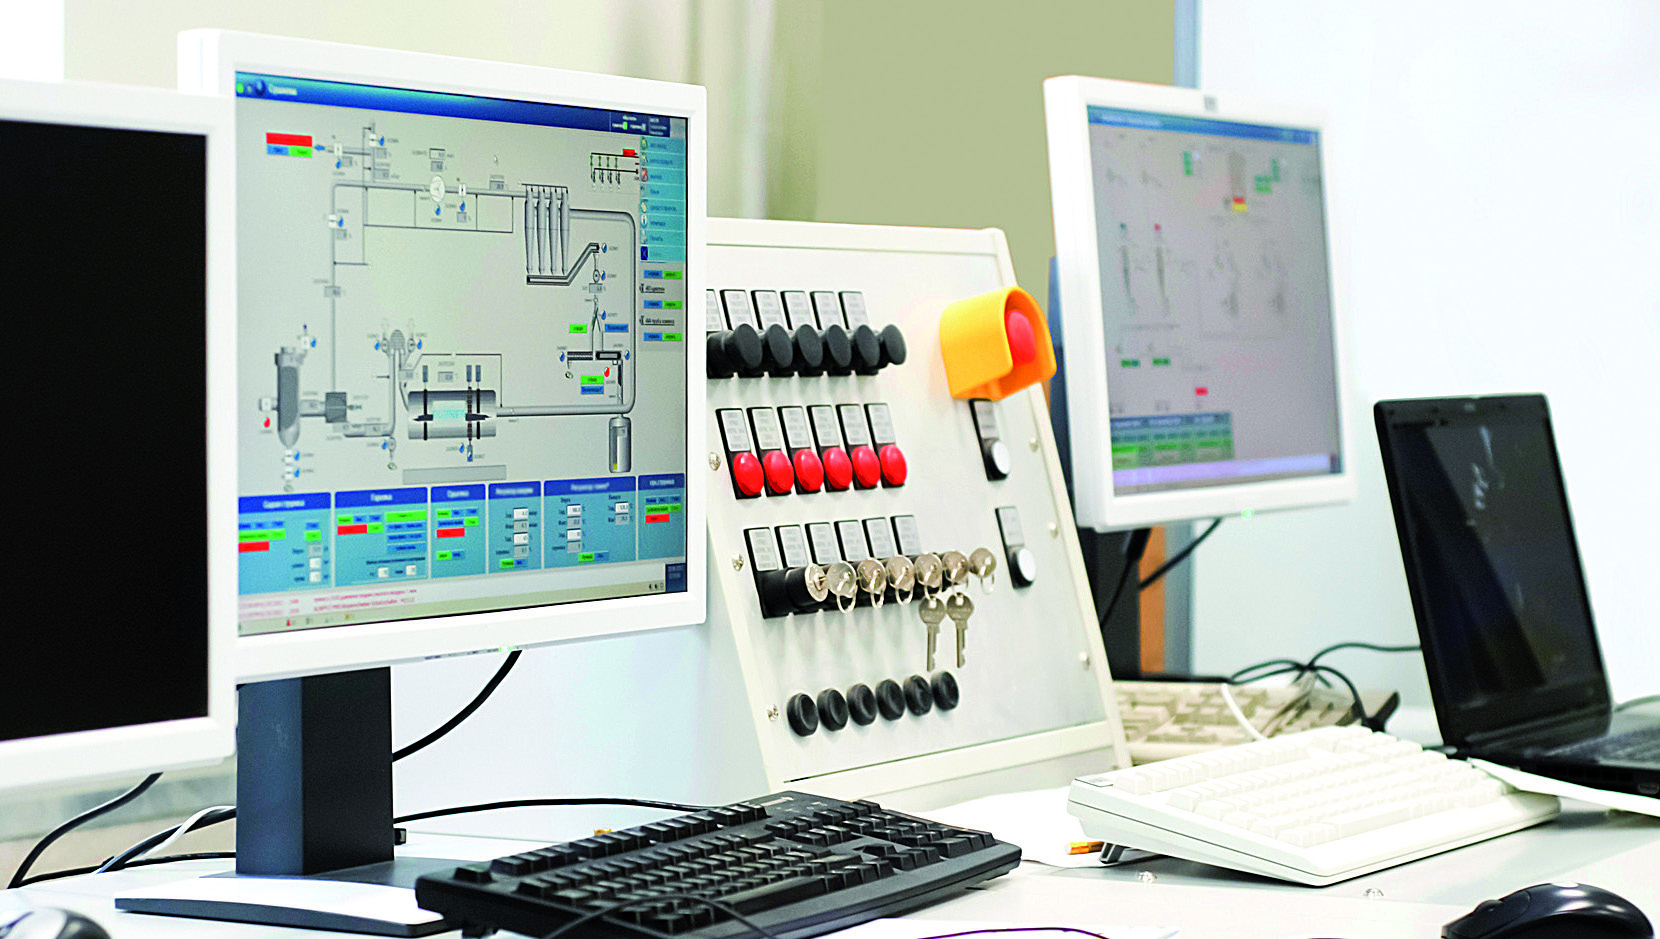 remote monitoring systems and integration into bms